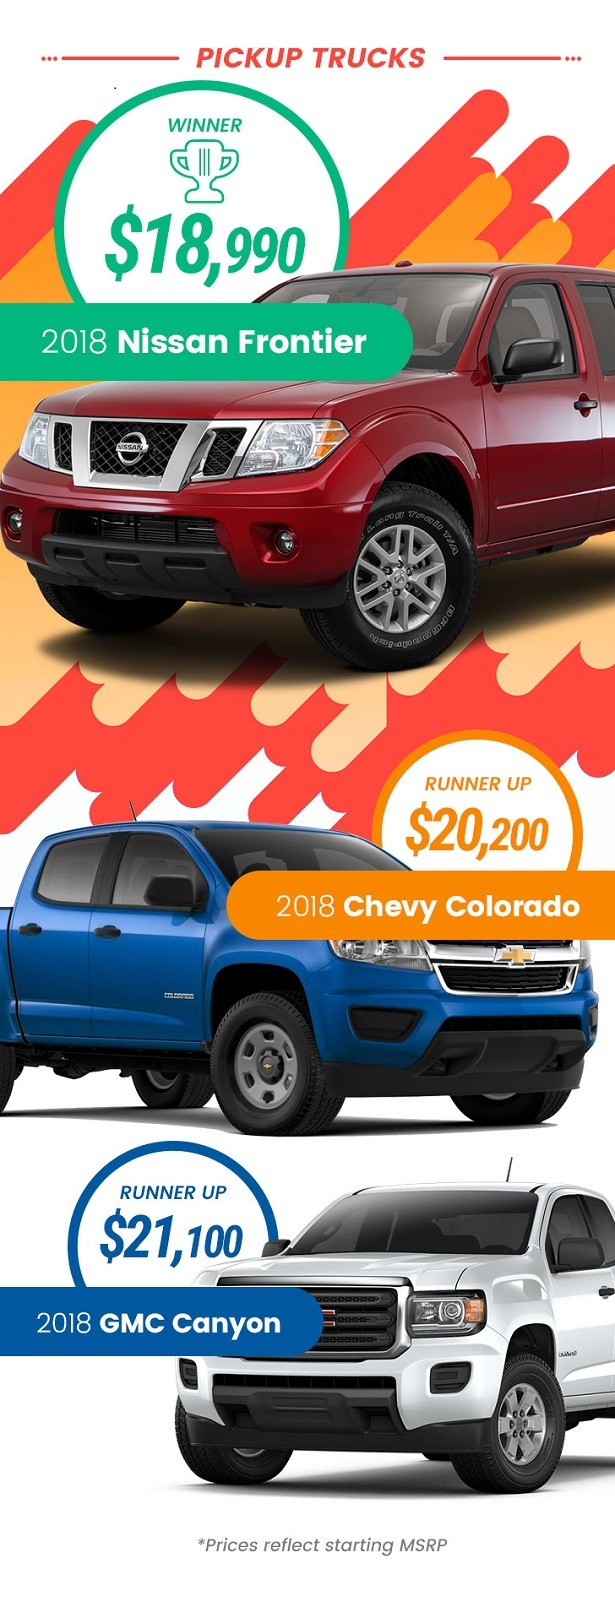 Affordable Pickup Trucks